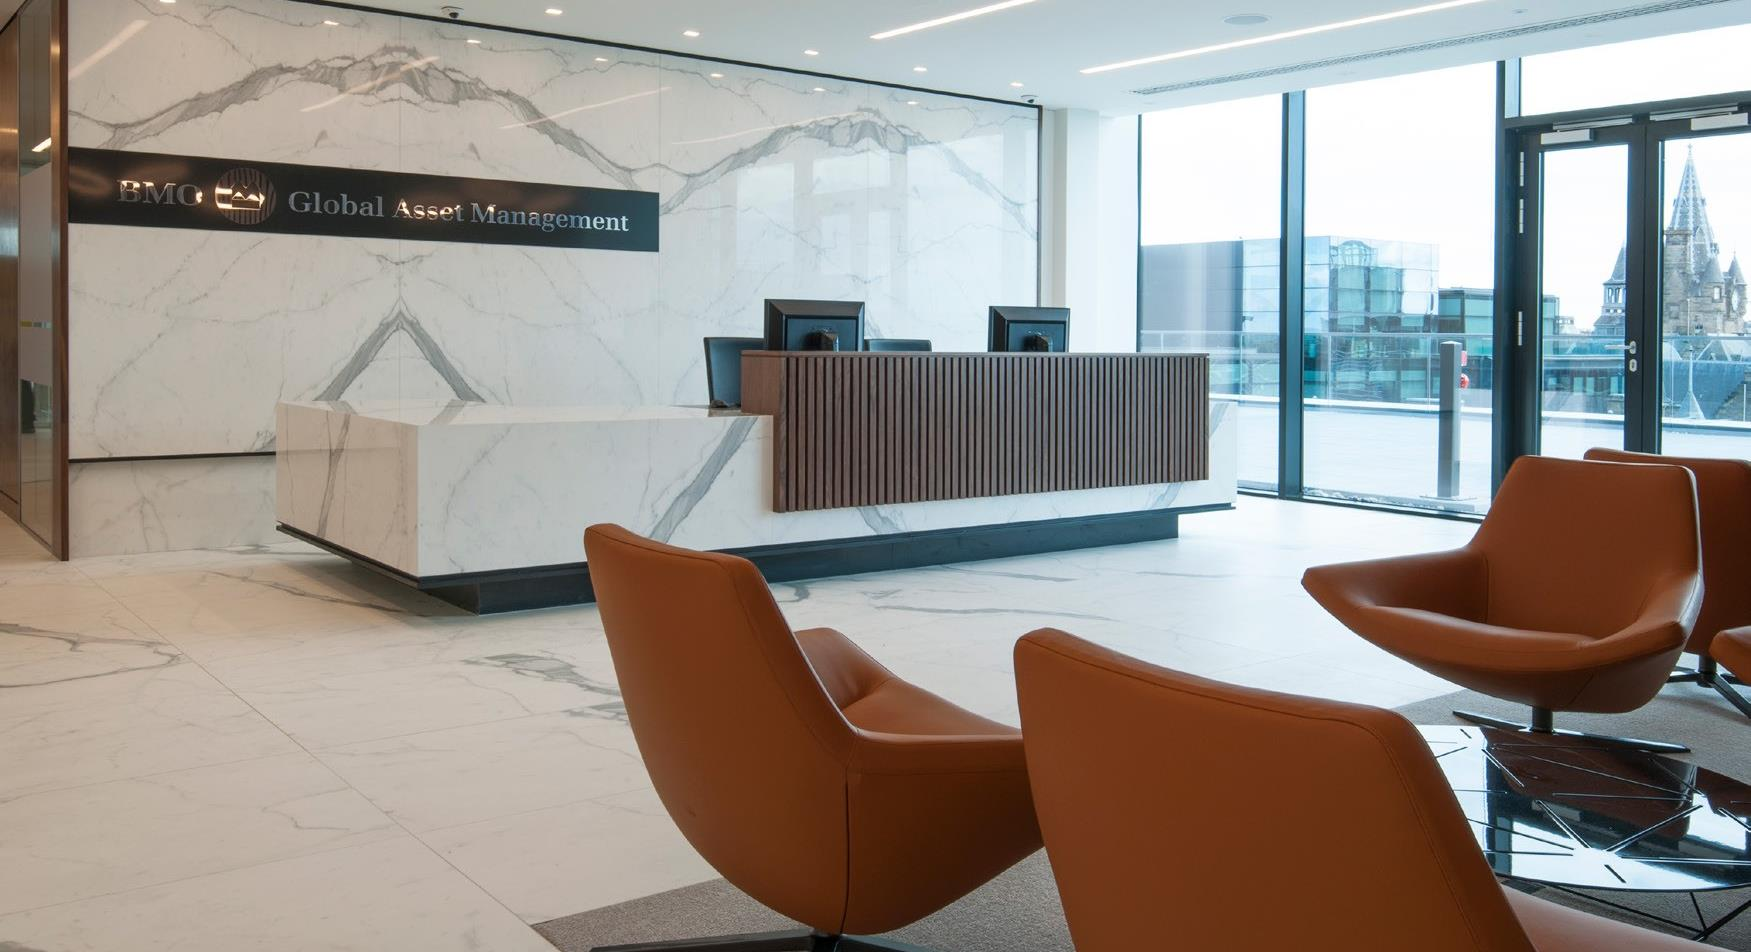 orange leather chairs in reception area